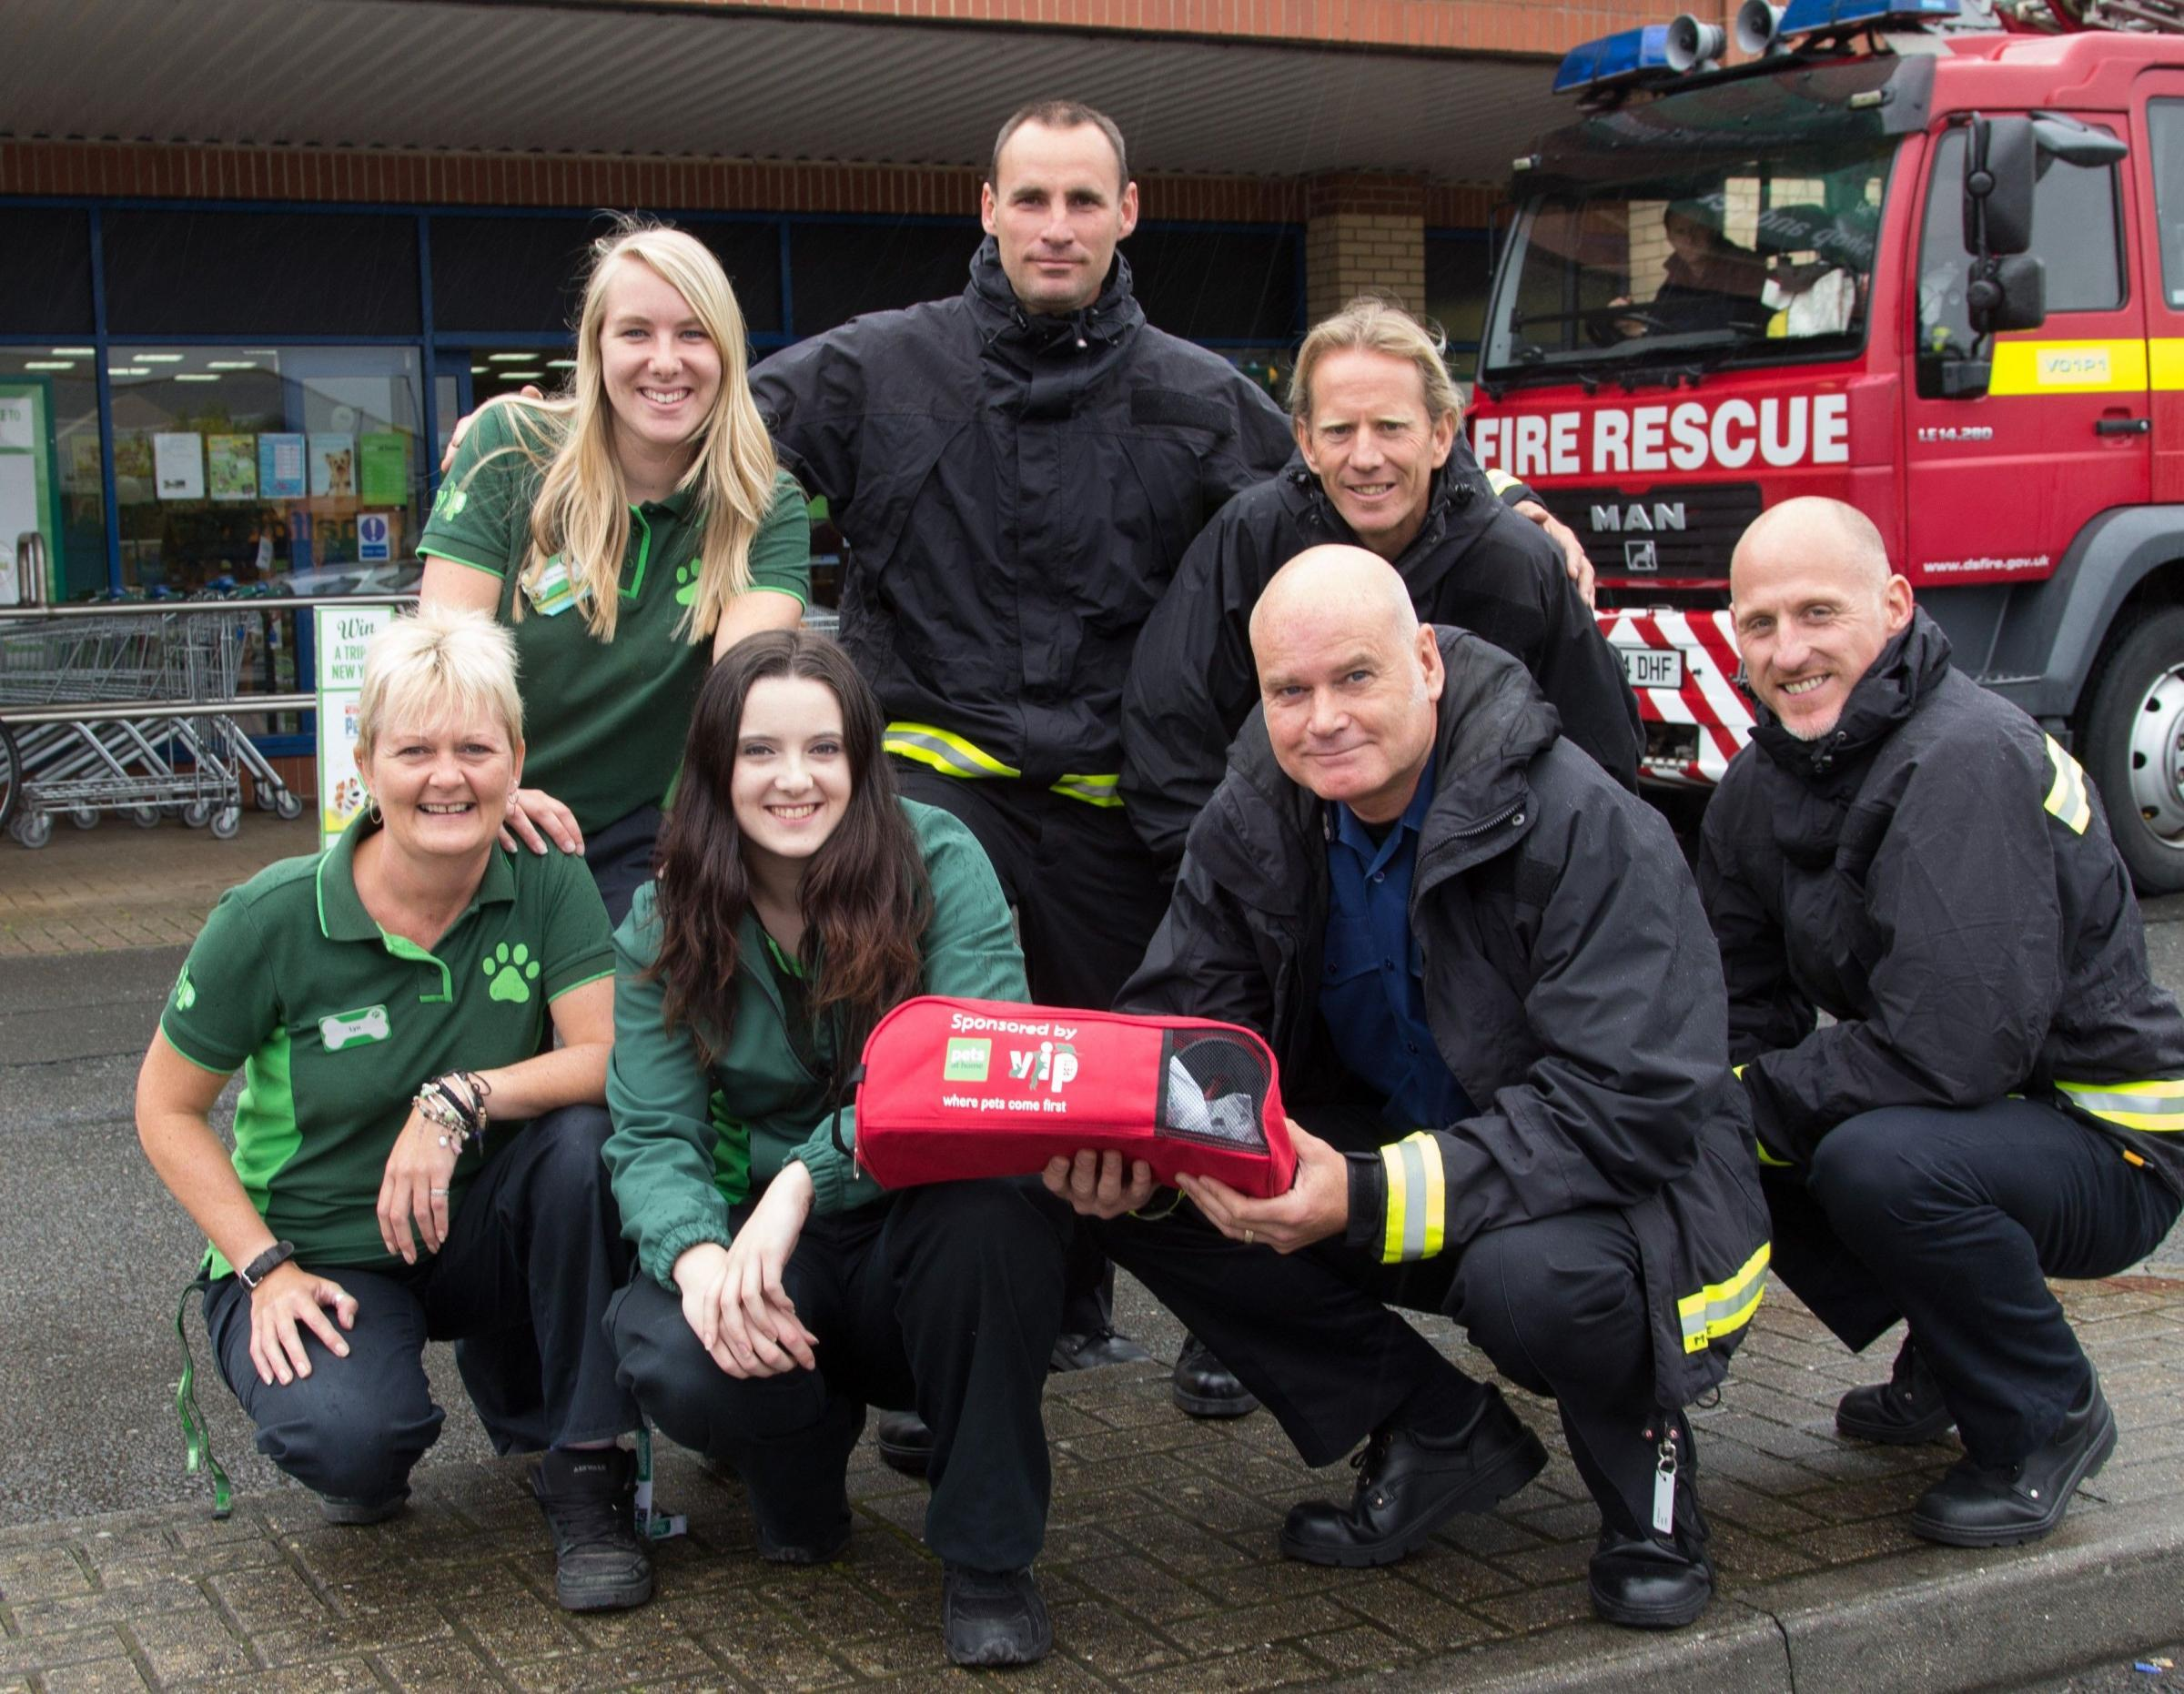 SAVING FURRY LIVES: Pets at Home staff and members of the Devon and Somerset Fire and Resue Service at the handover of the 'Smokey Paws' breathing equipment in Barnstaple.